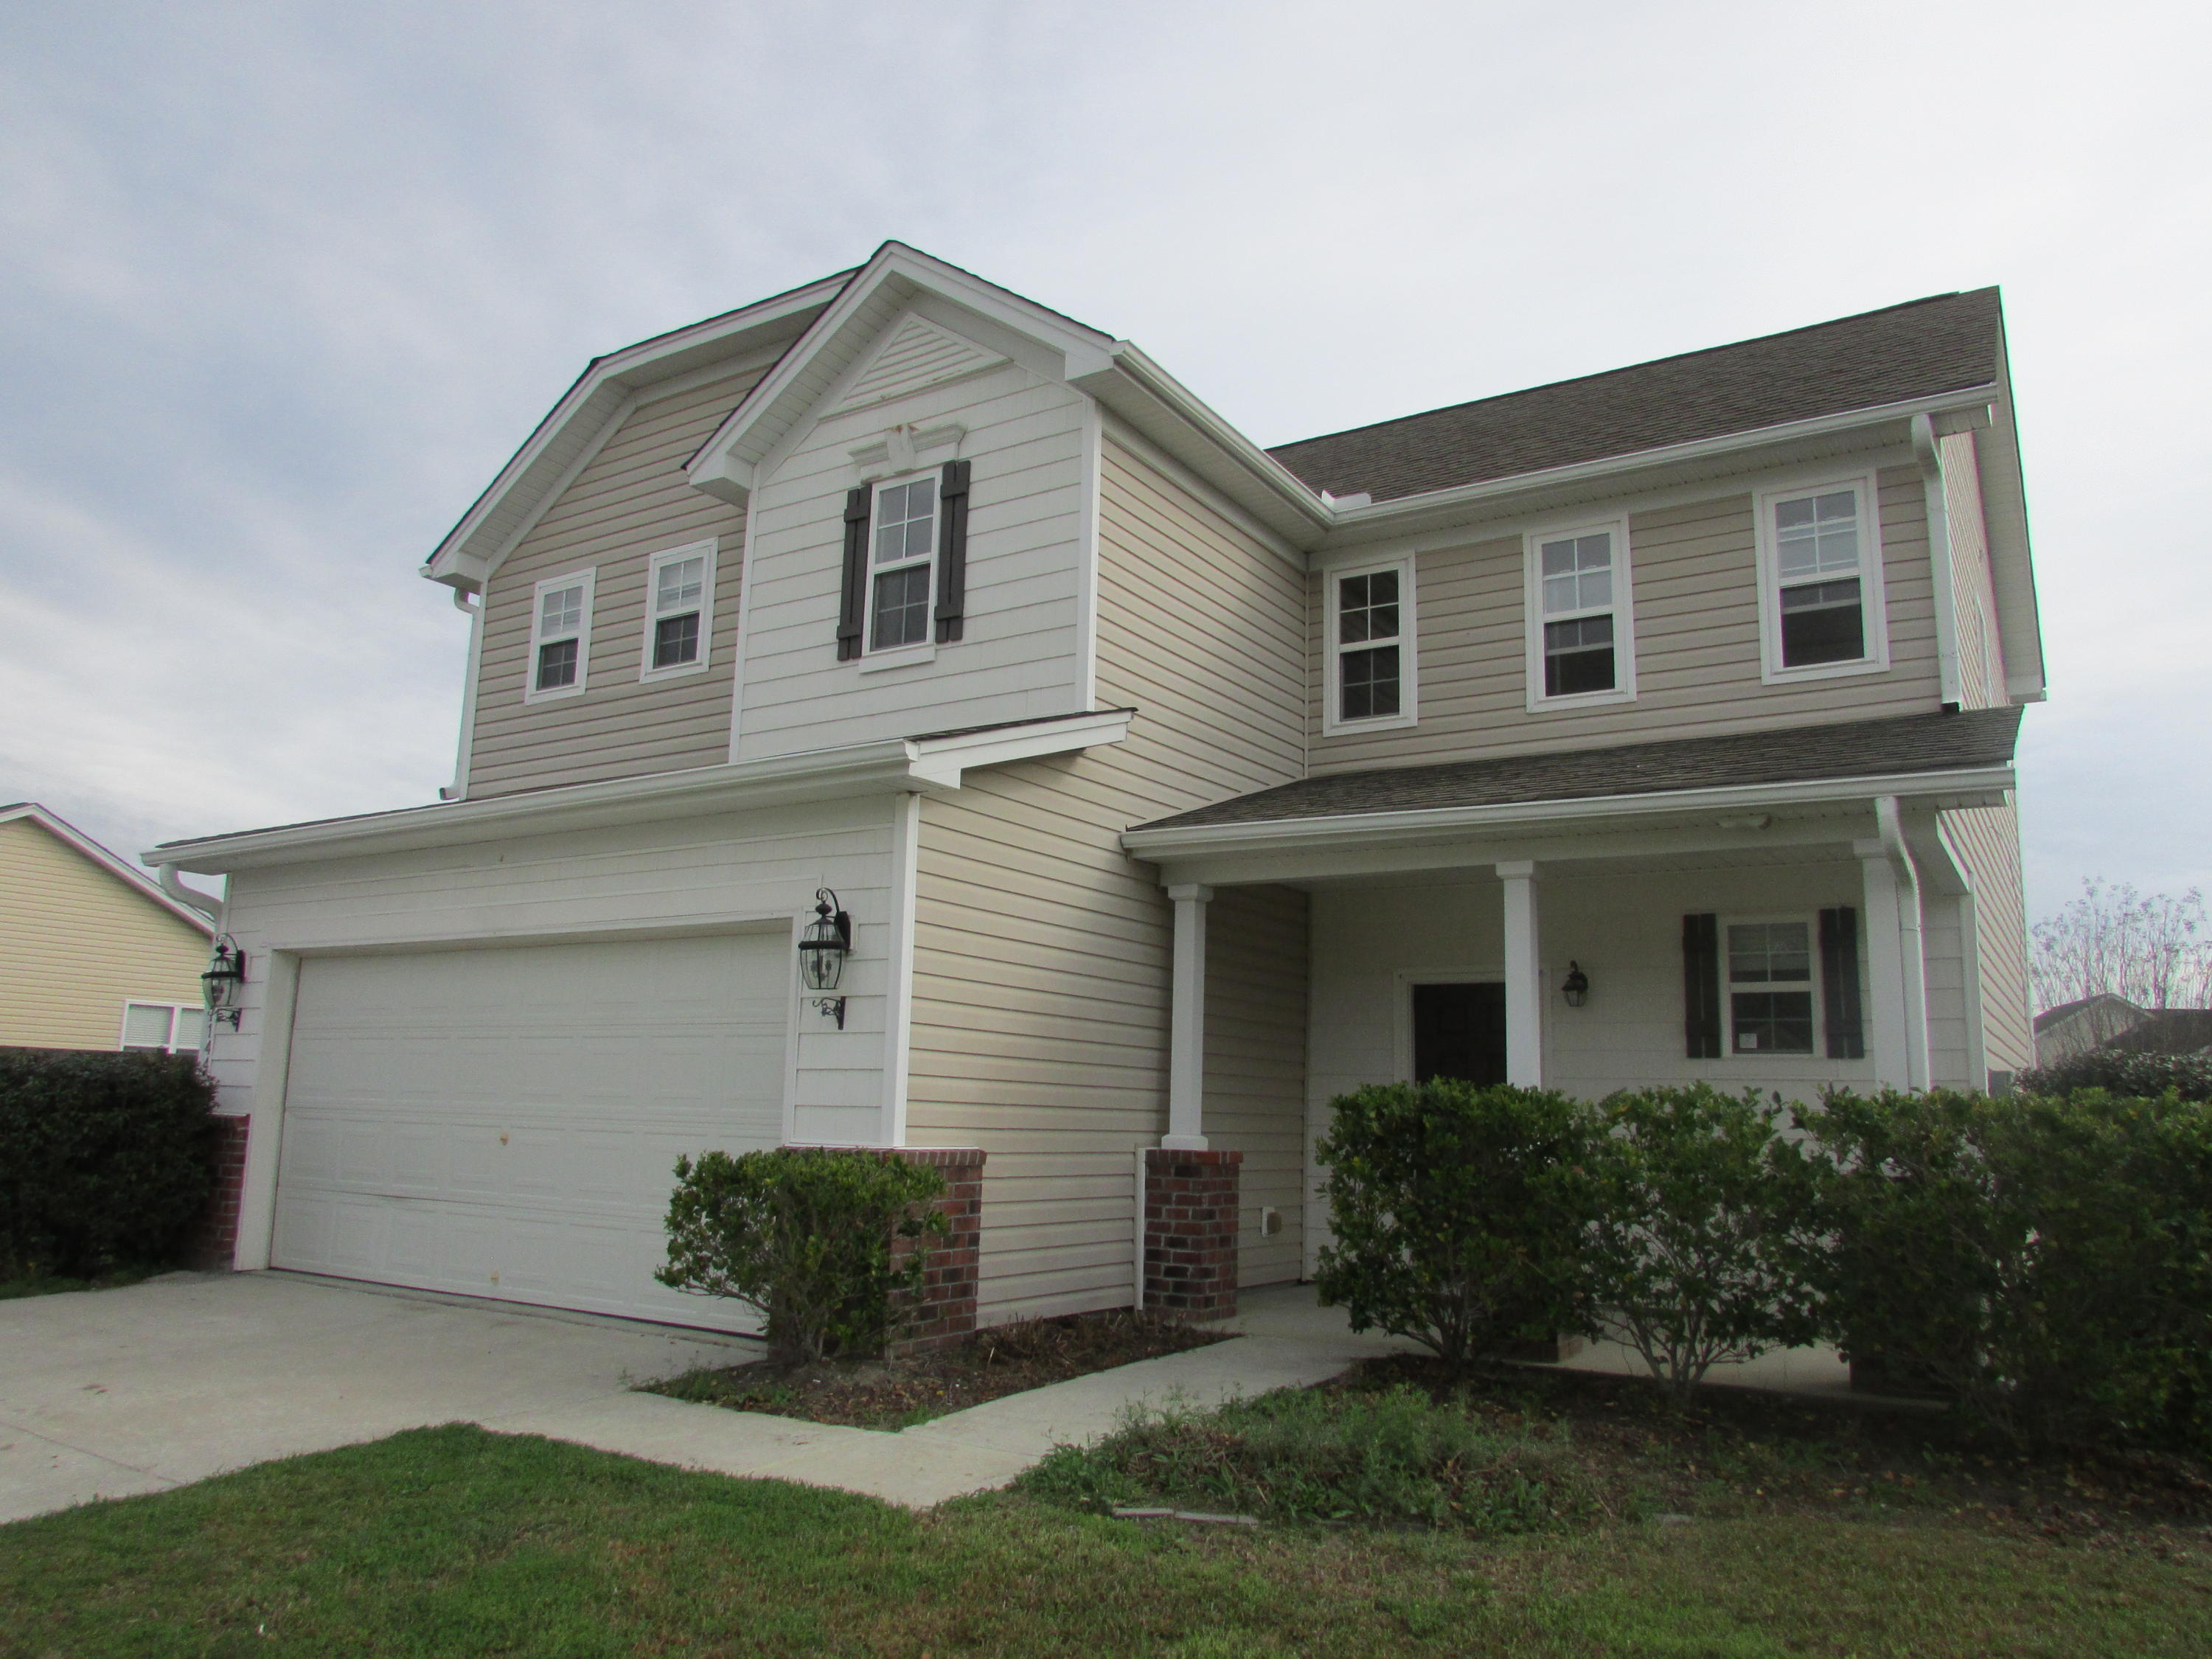 Photo of 7144 Sweetgrass Blvd, Hanahan, SC 29410